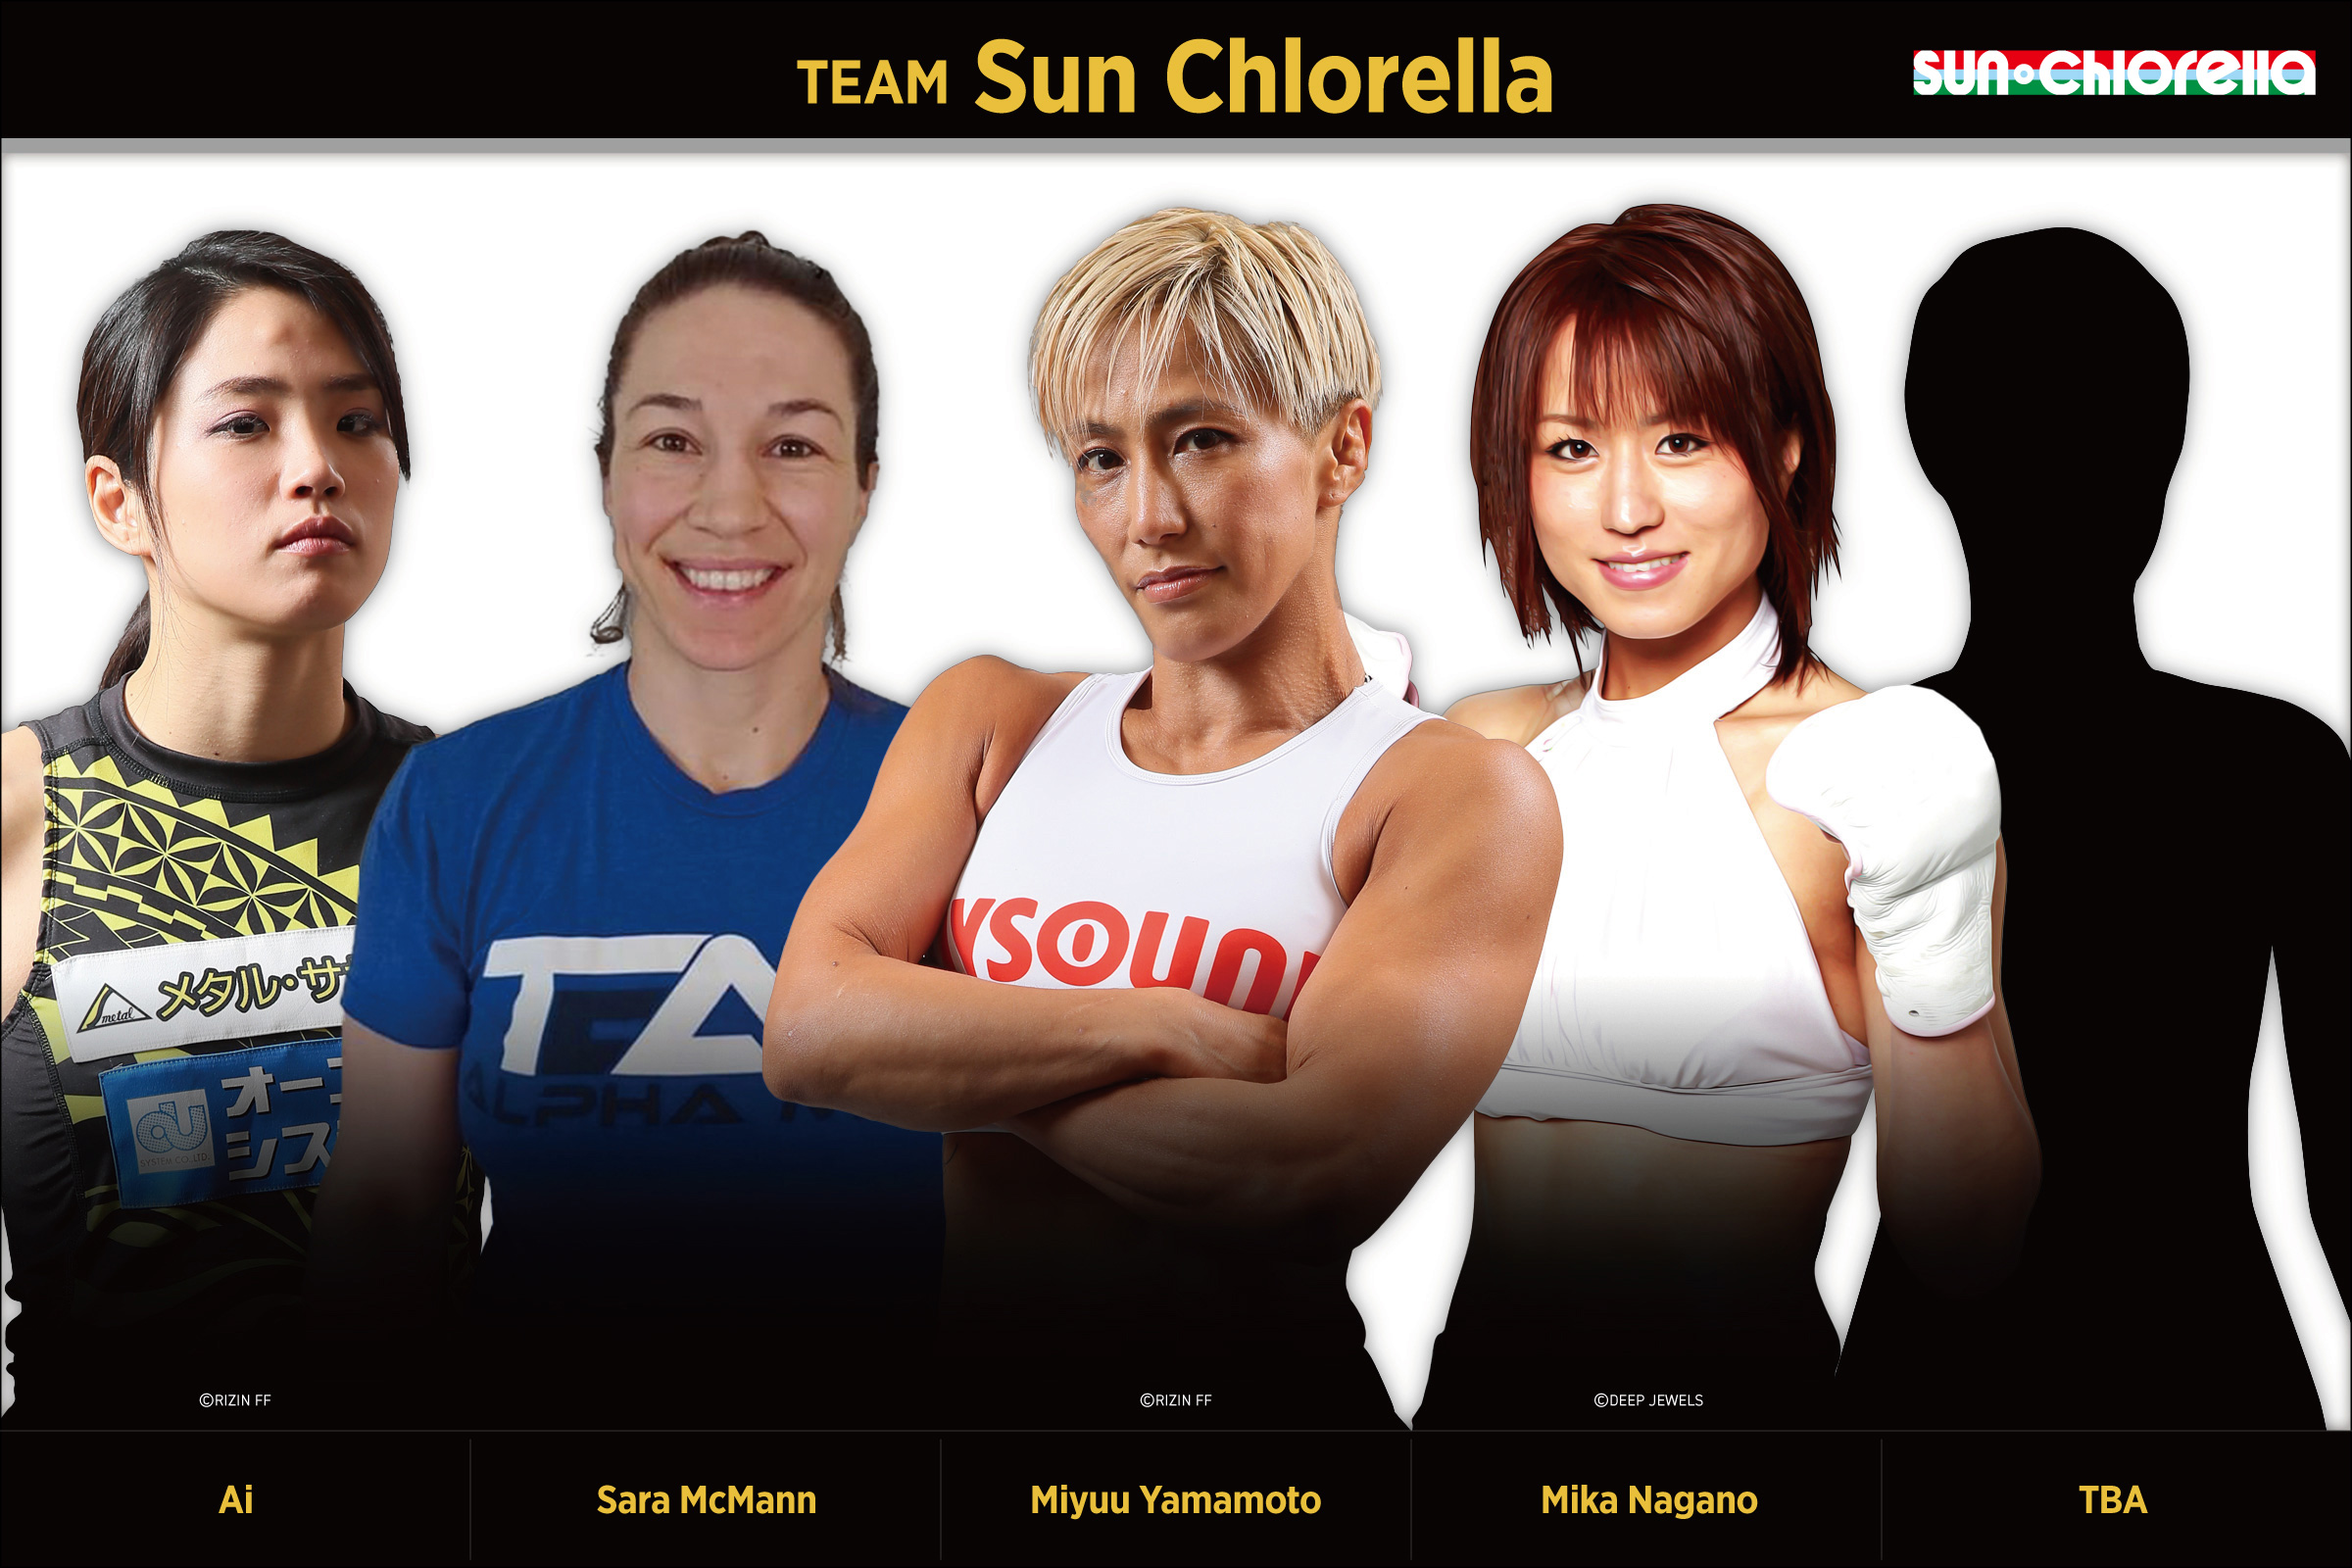 TEAM Sun Chlorella